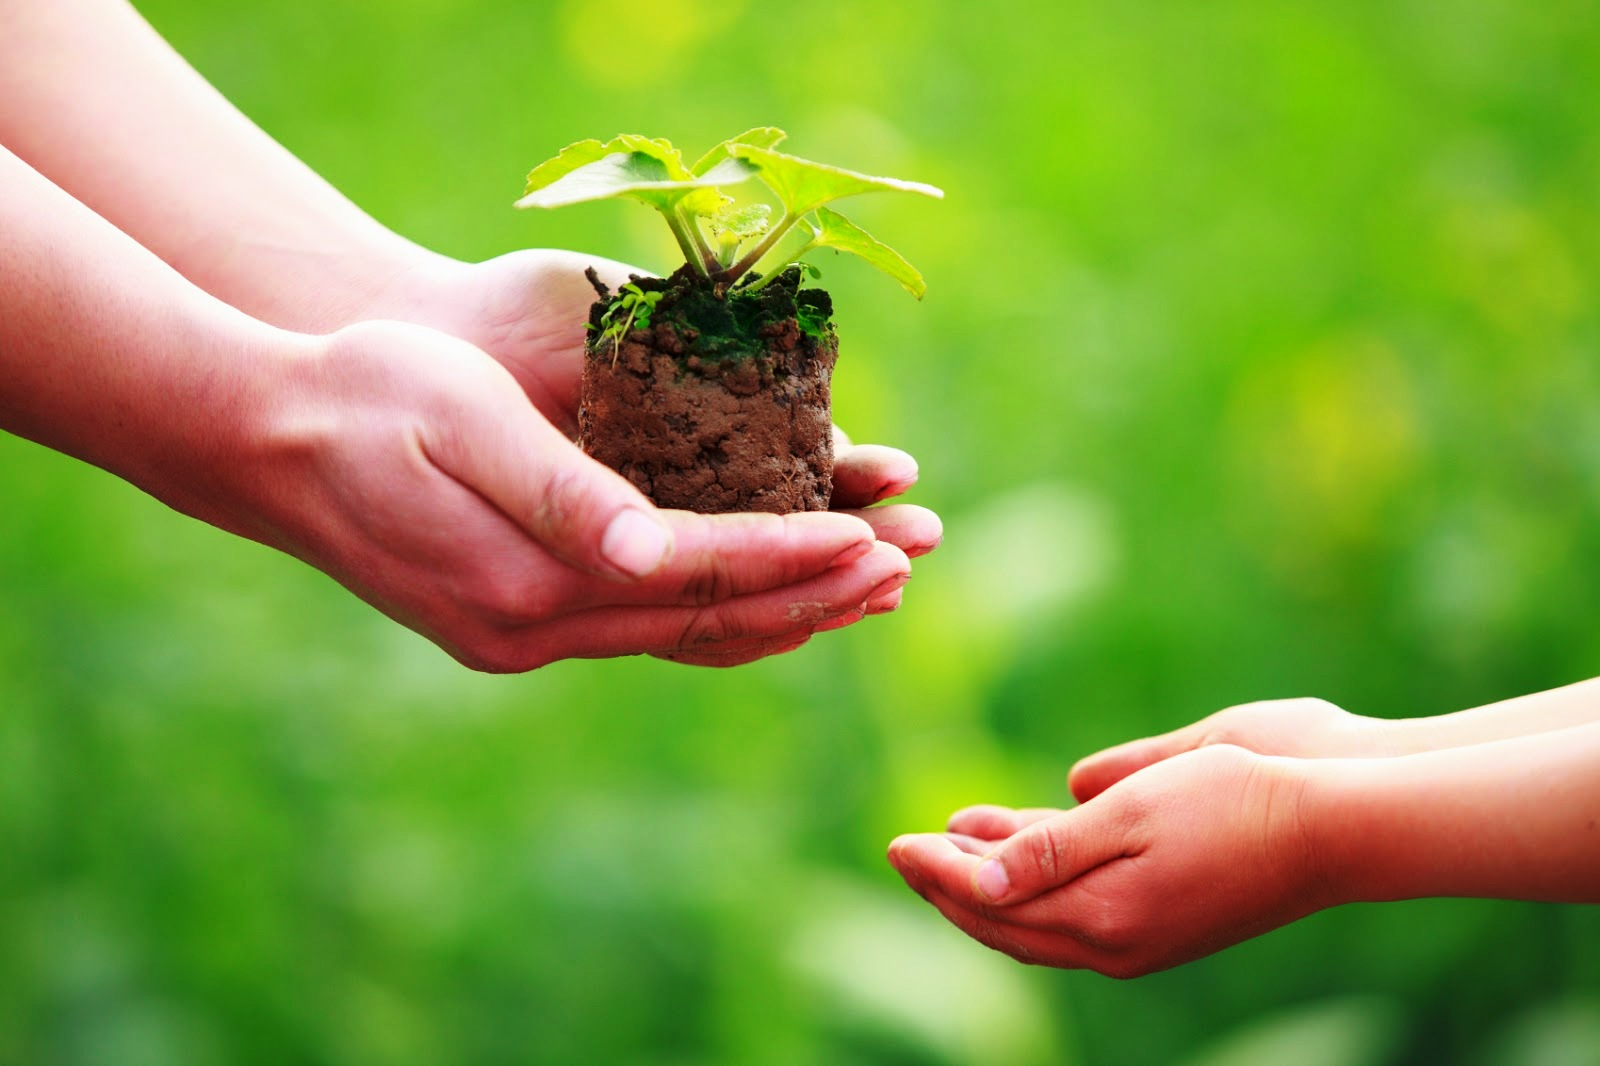 Giving and receiving heal both the giver and the receiver - Image: Hands gifting a small plant to cupped hands receiving it